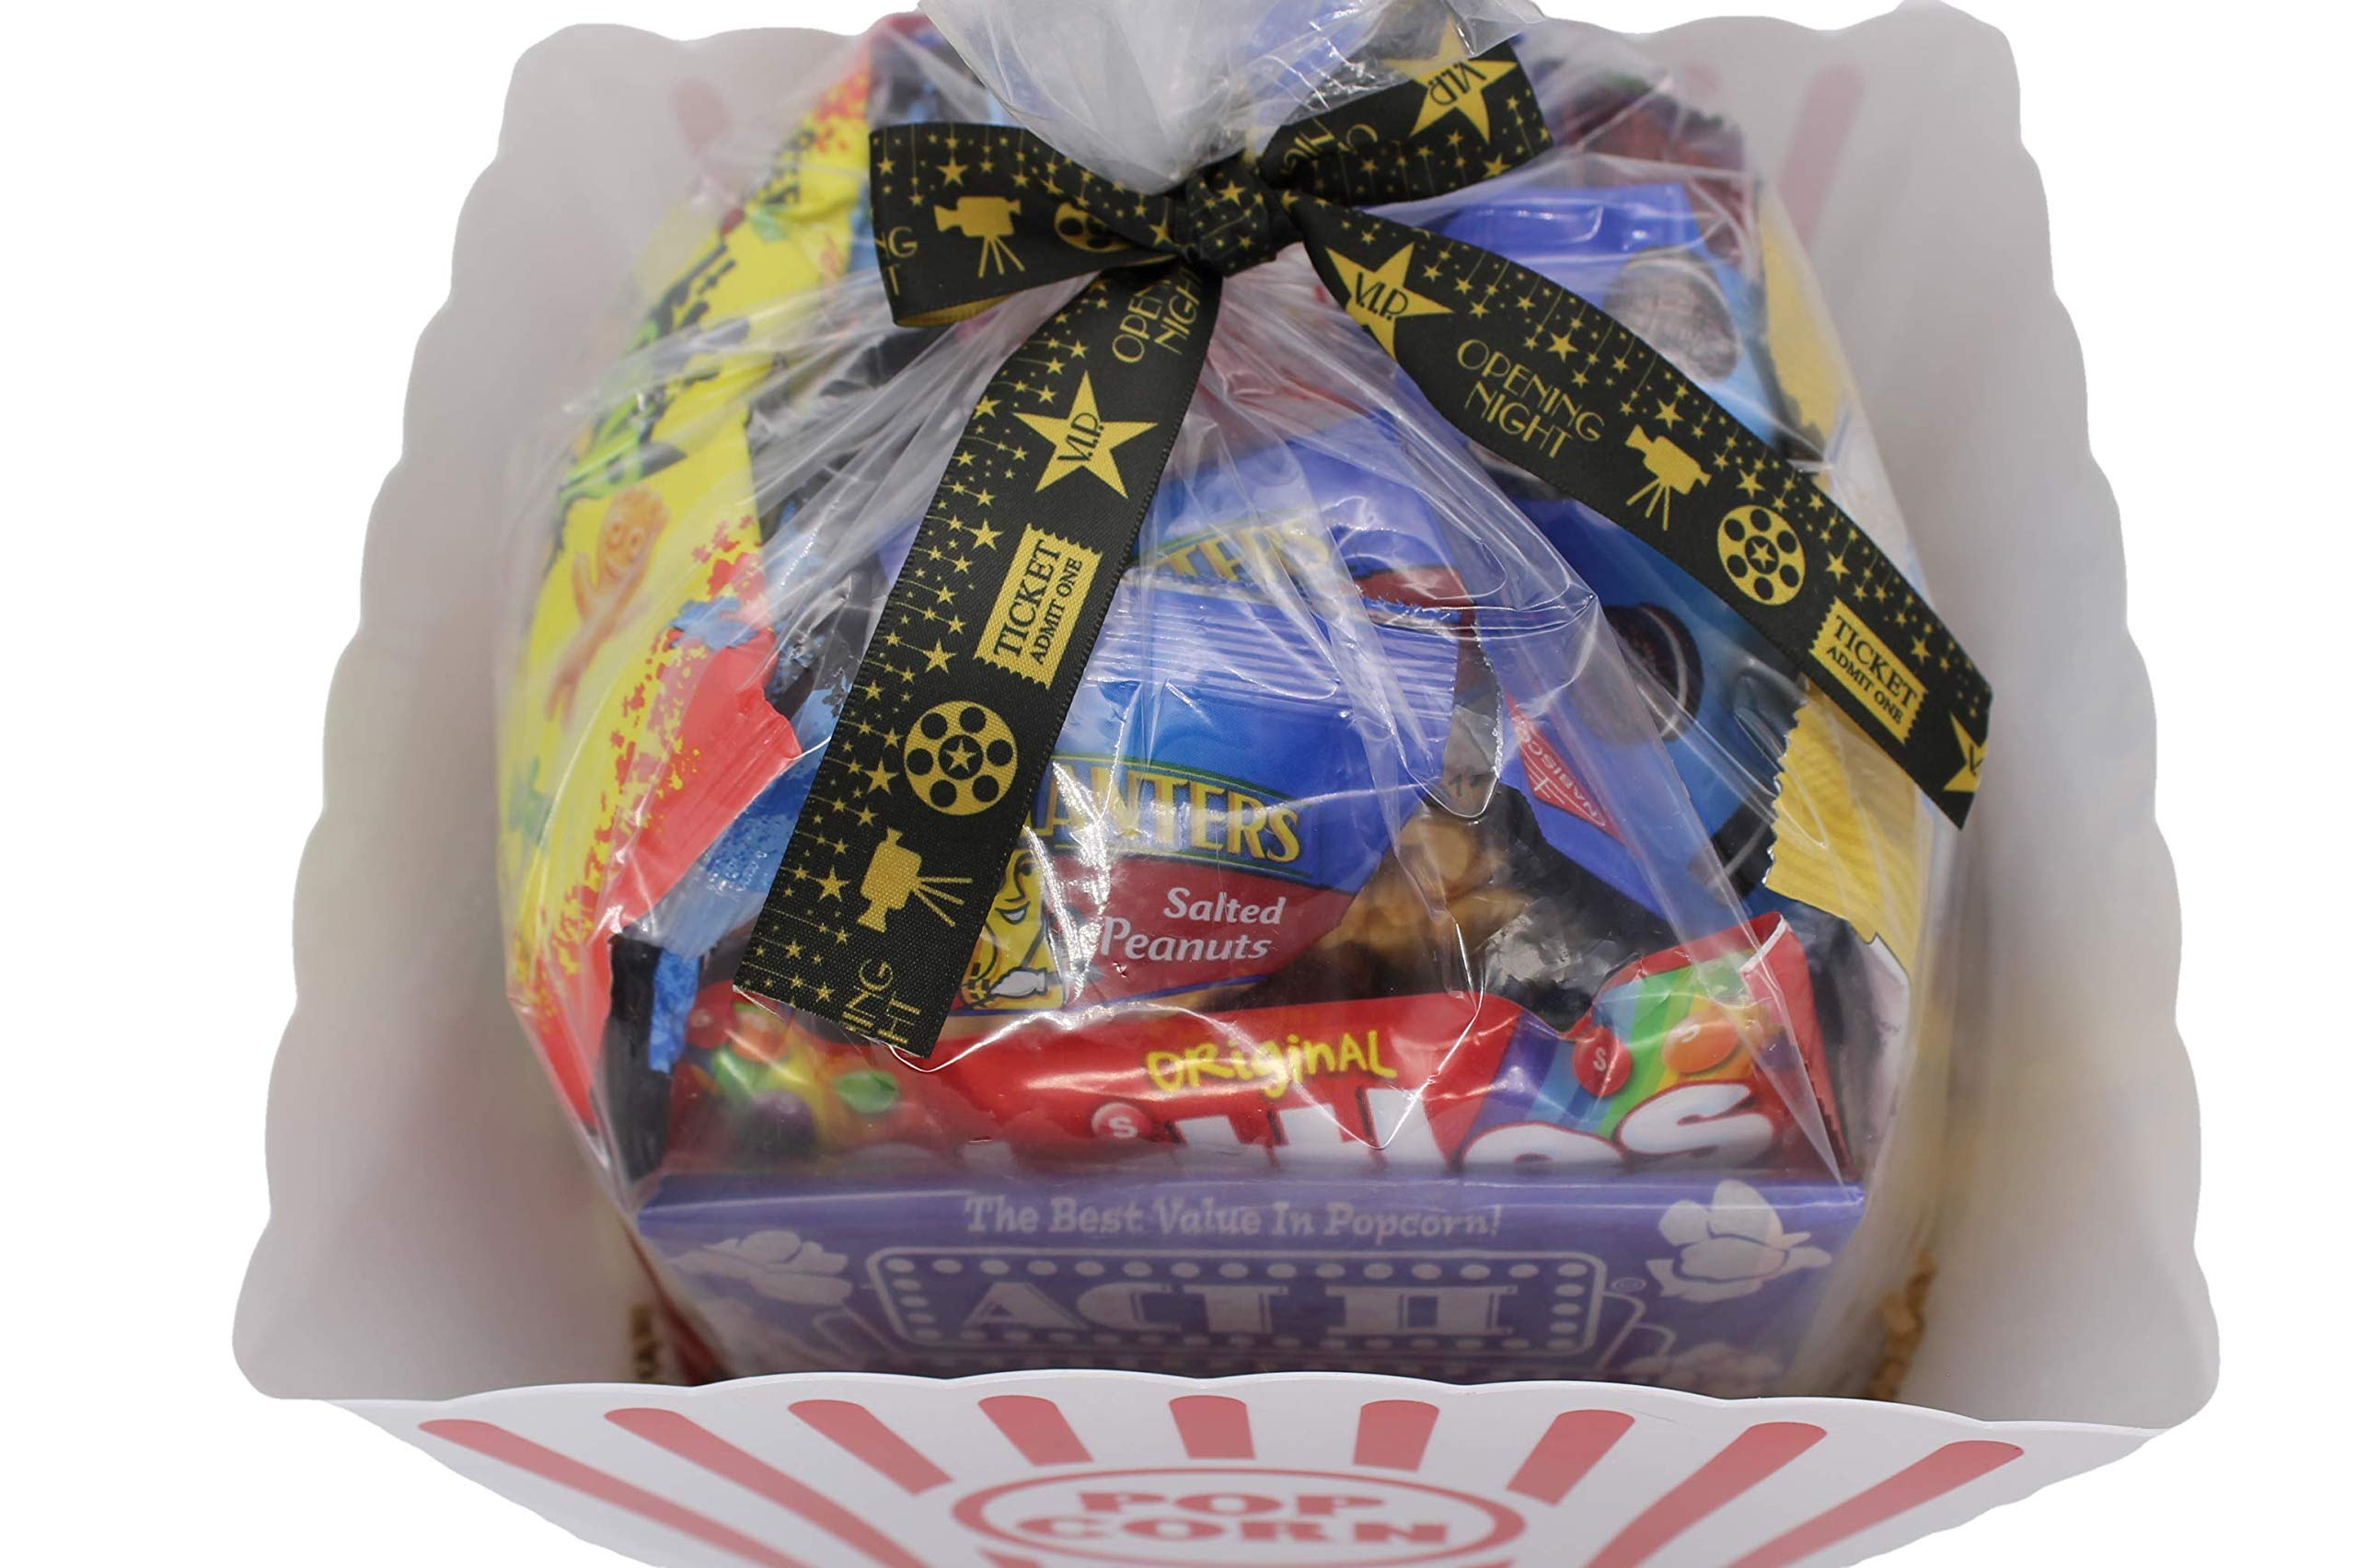 MOVIE NIGHT GIFT BASKET 30 Of Your Favorite Popcorn, Candy Cookies Crackers Perfect Birthday Box Holiday Surprised College Care Package Kids Party Family Movie Night Or A Special Date Night by Tiny Timz (Image #7)